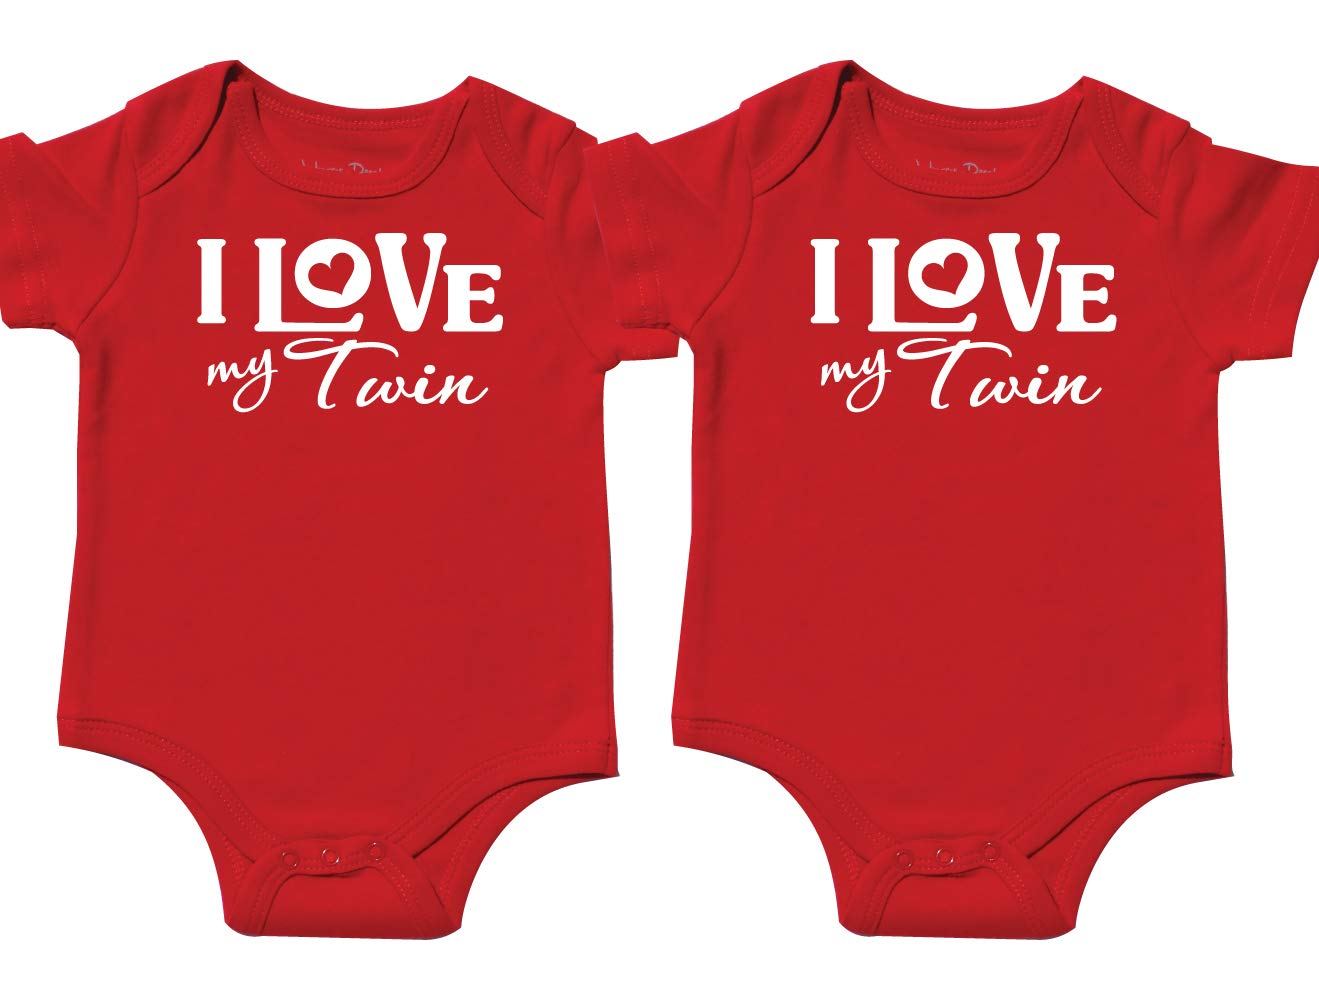 Nursery Decals and More Matching Onesies for Twins, Includes 2 Bodysuits, 0-3 Month I Love My Twin